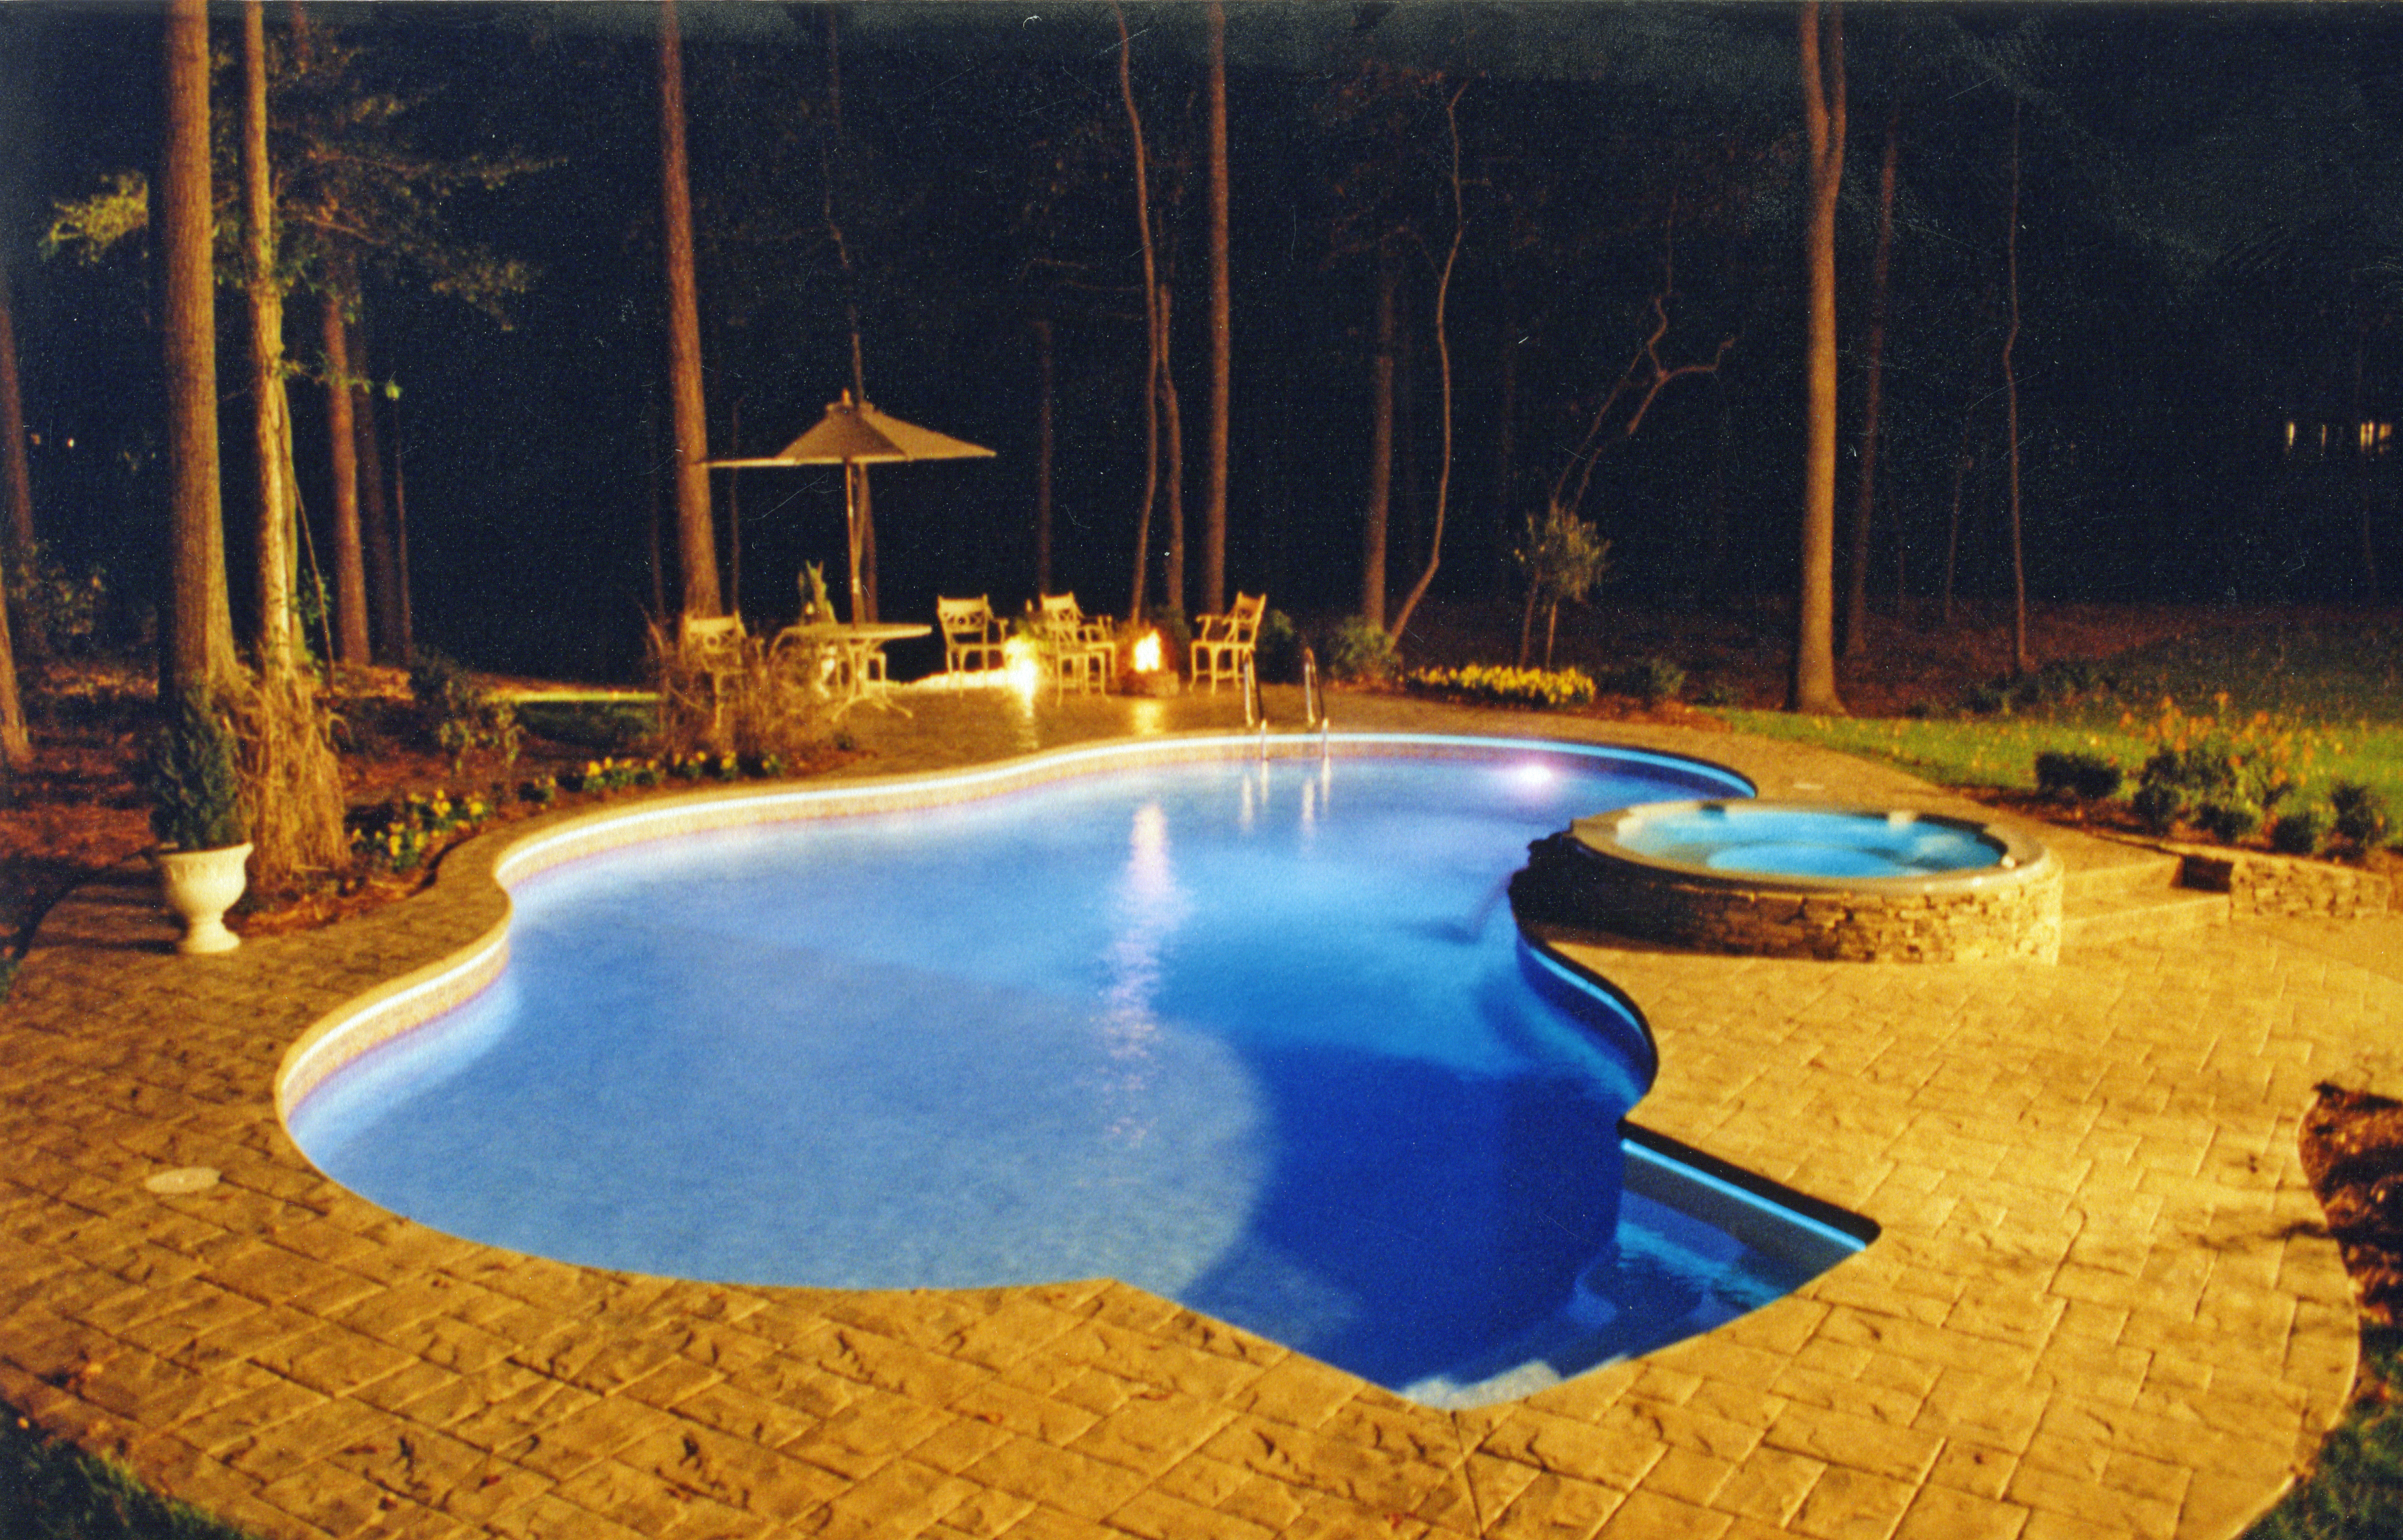 Freeform liner pool 27a Sierra a